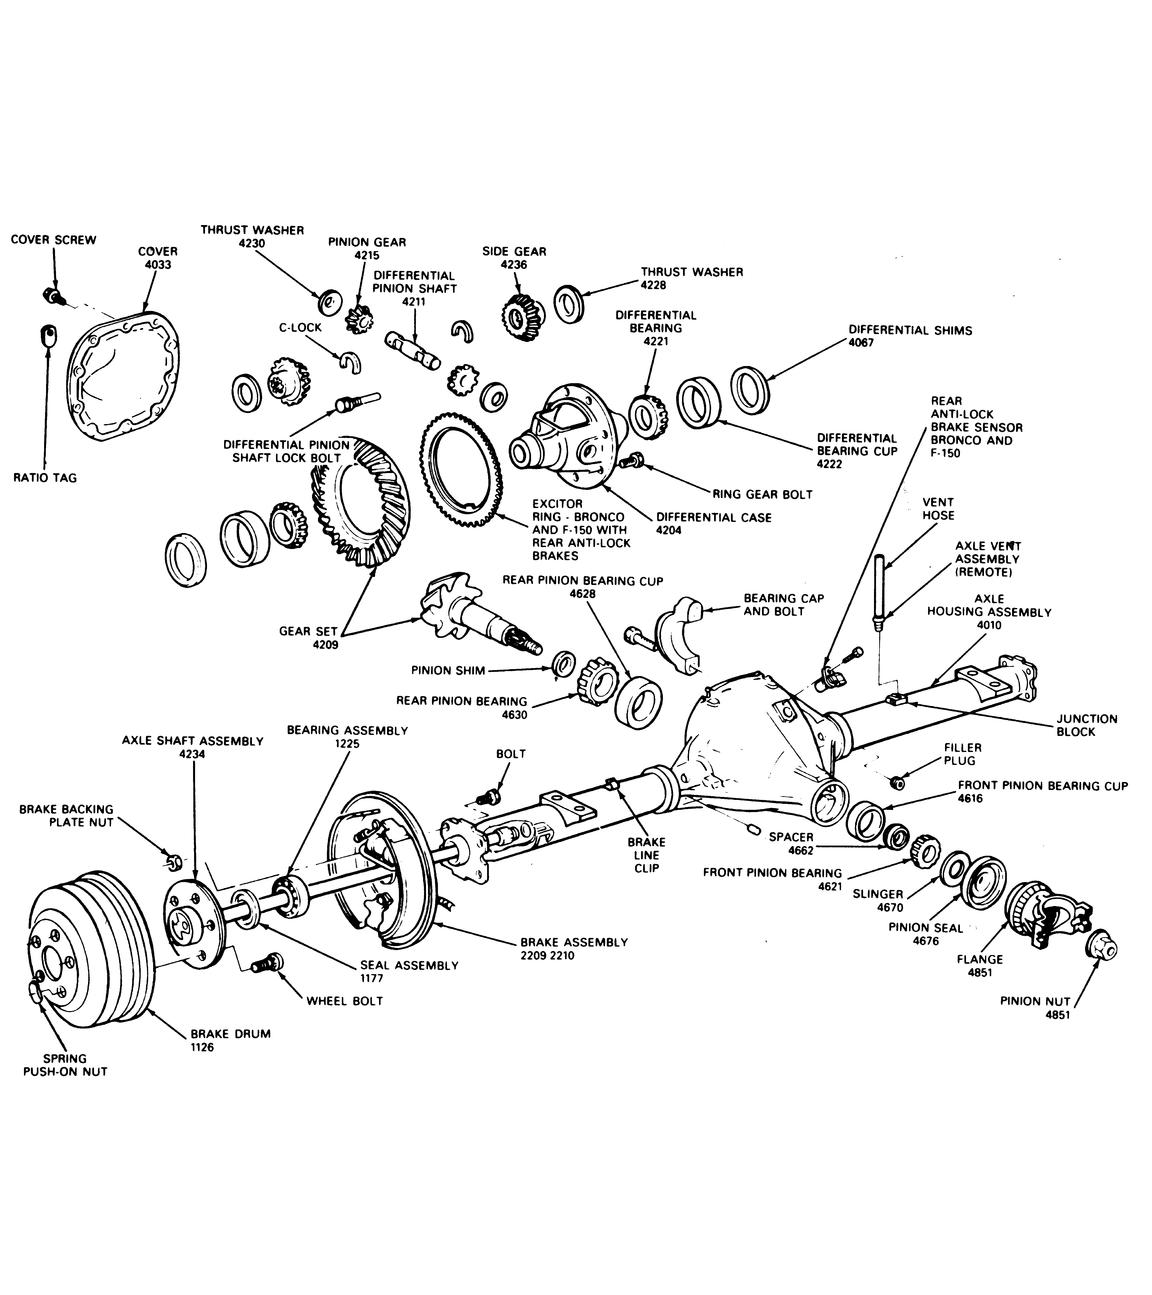 The Ford Ranger Axle & Locking Hub Library